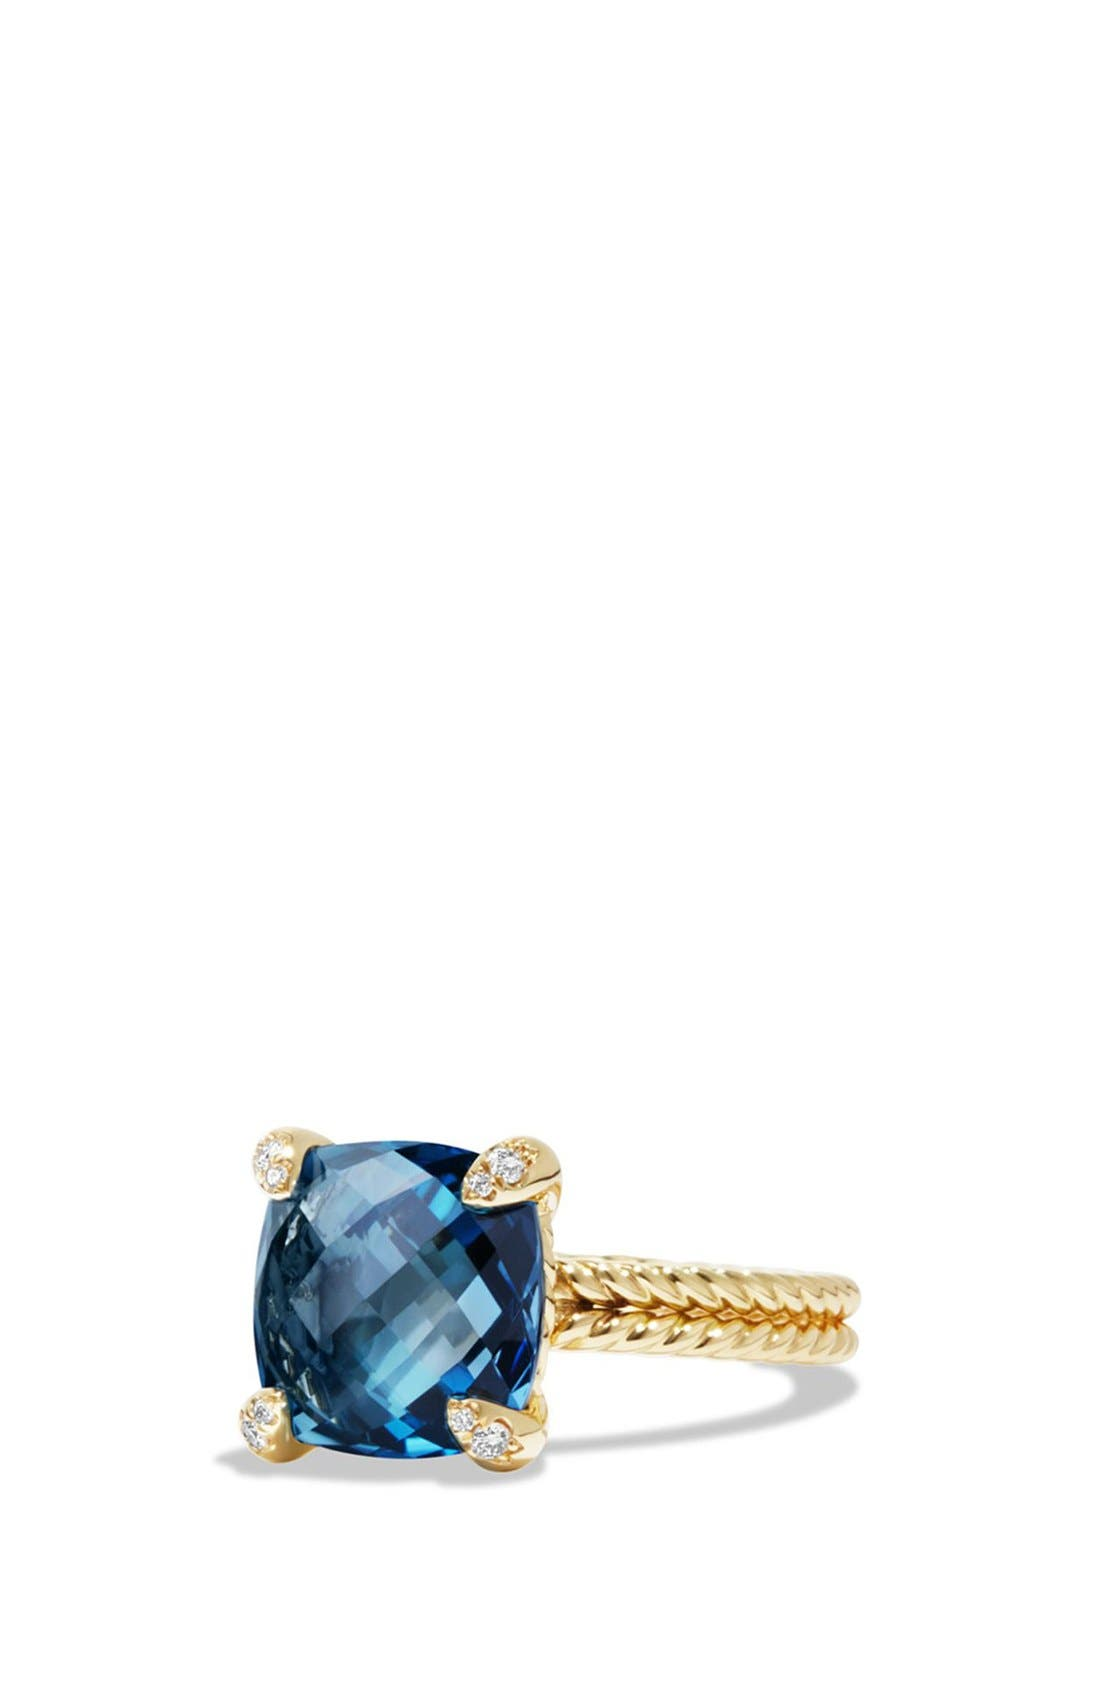 Châtelaine Ring with Hampton Blue Topaz and Diamonds in 18K Gold,                             Main thumbnail 1, color,                             HAMPTON BLUE TOPAZ